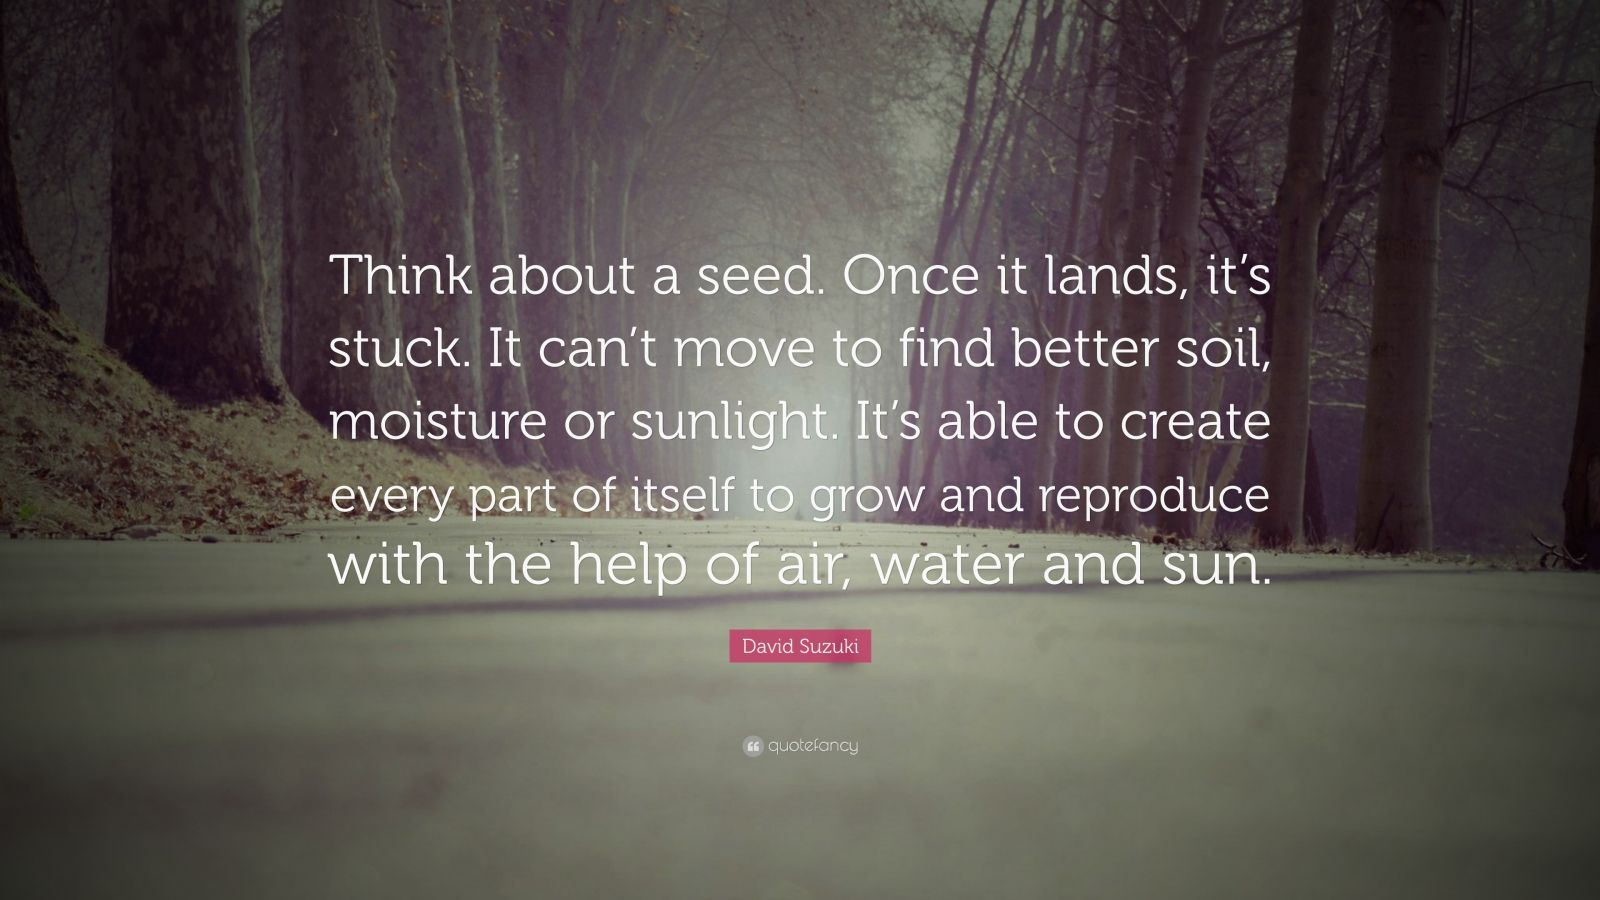 "David Suzuki Quote: ""Think about a seed. Once it lands, it's stuck. It can't move to find better soil, moisture or sunlight. It's able to create every part of itself to grow and reproduce with the help of air, water and sun."""